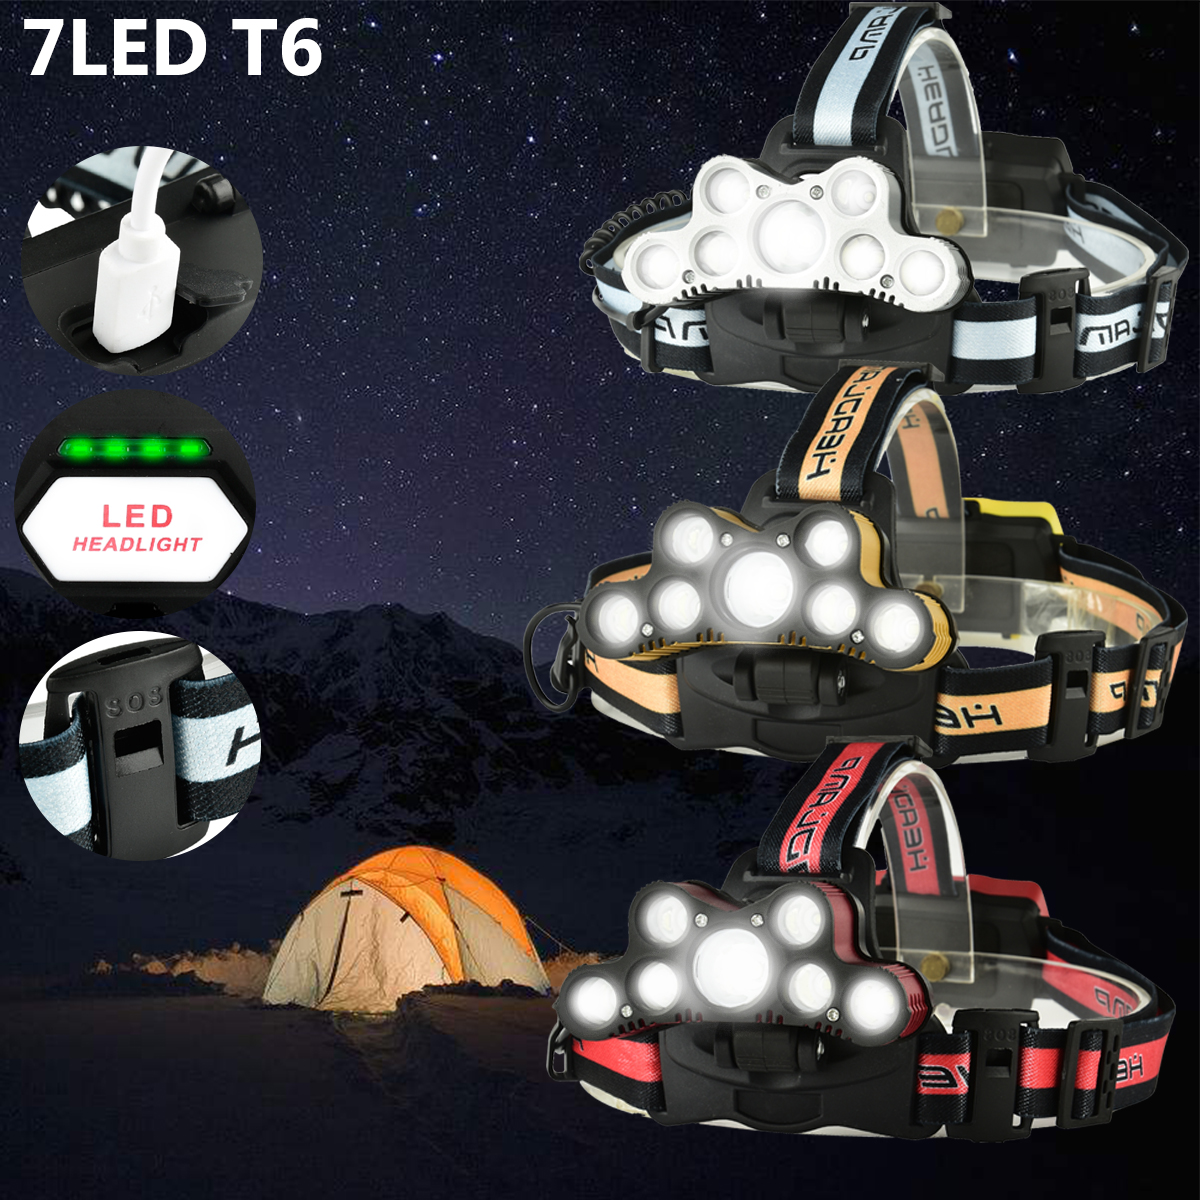 Elfeland 5000Lumens 7xT6 LED USB Headlight Headlamp Torch with SOS Help Whistle 6 Modes For Camping Hiking